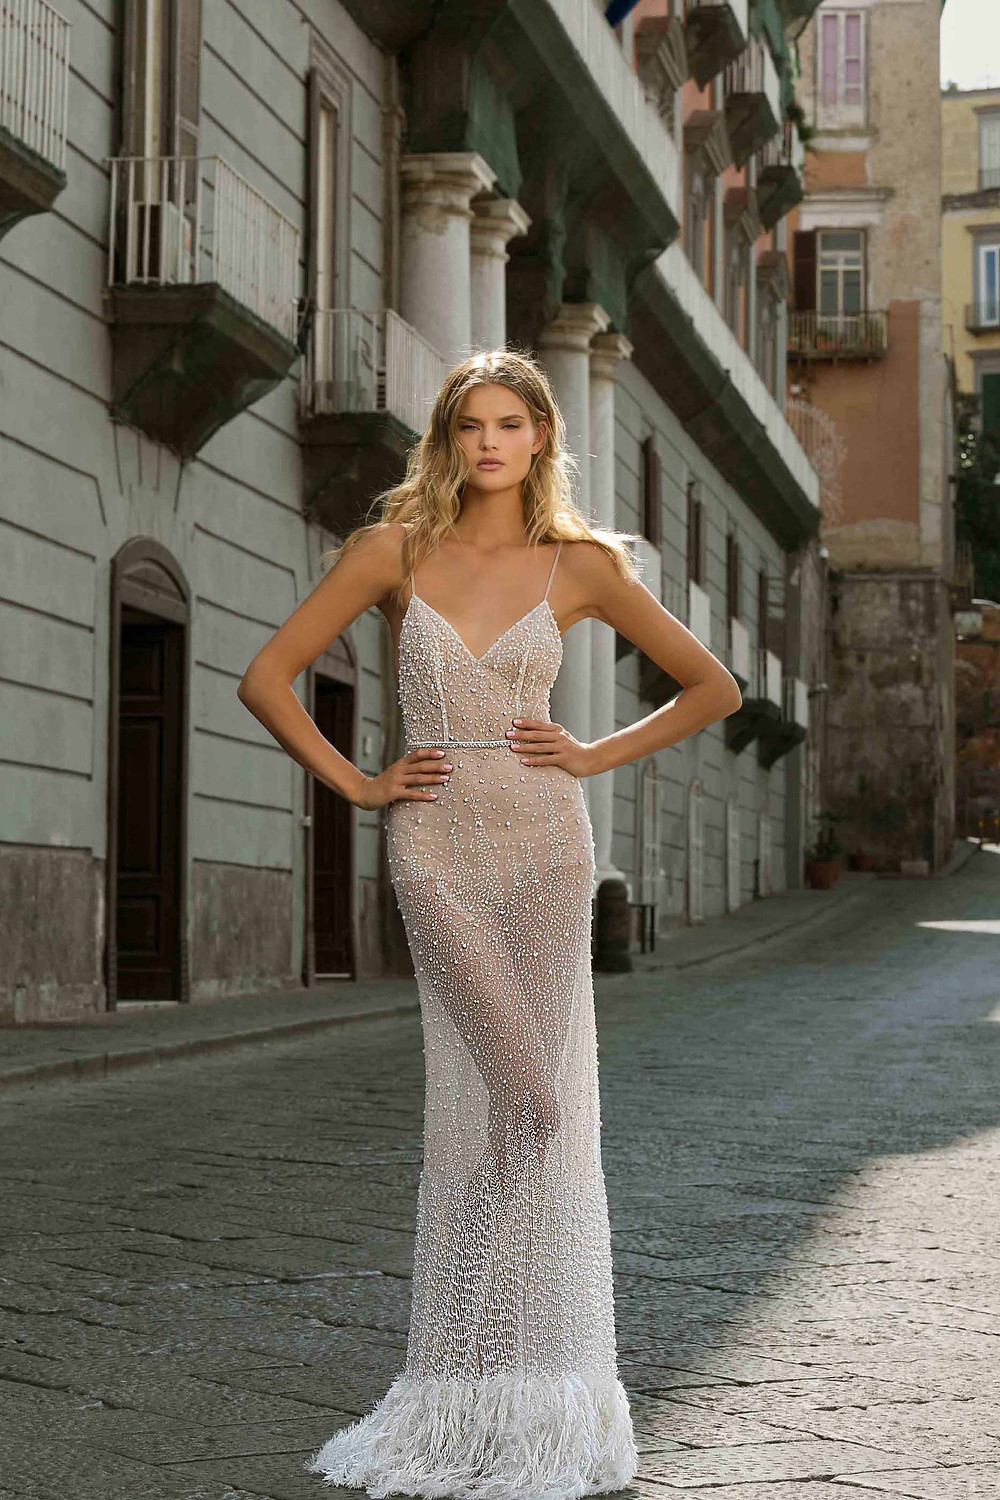 A sparkly sheath wedding dress, with thin straps, feathers and crystals